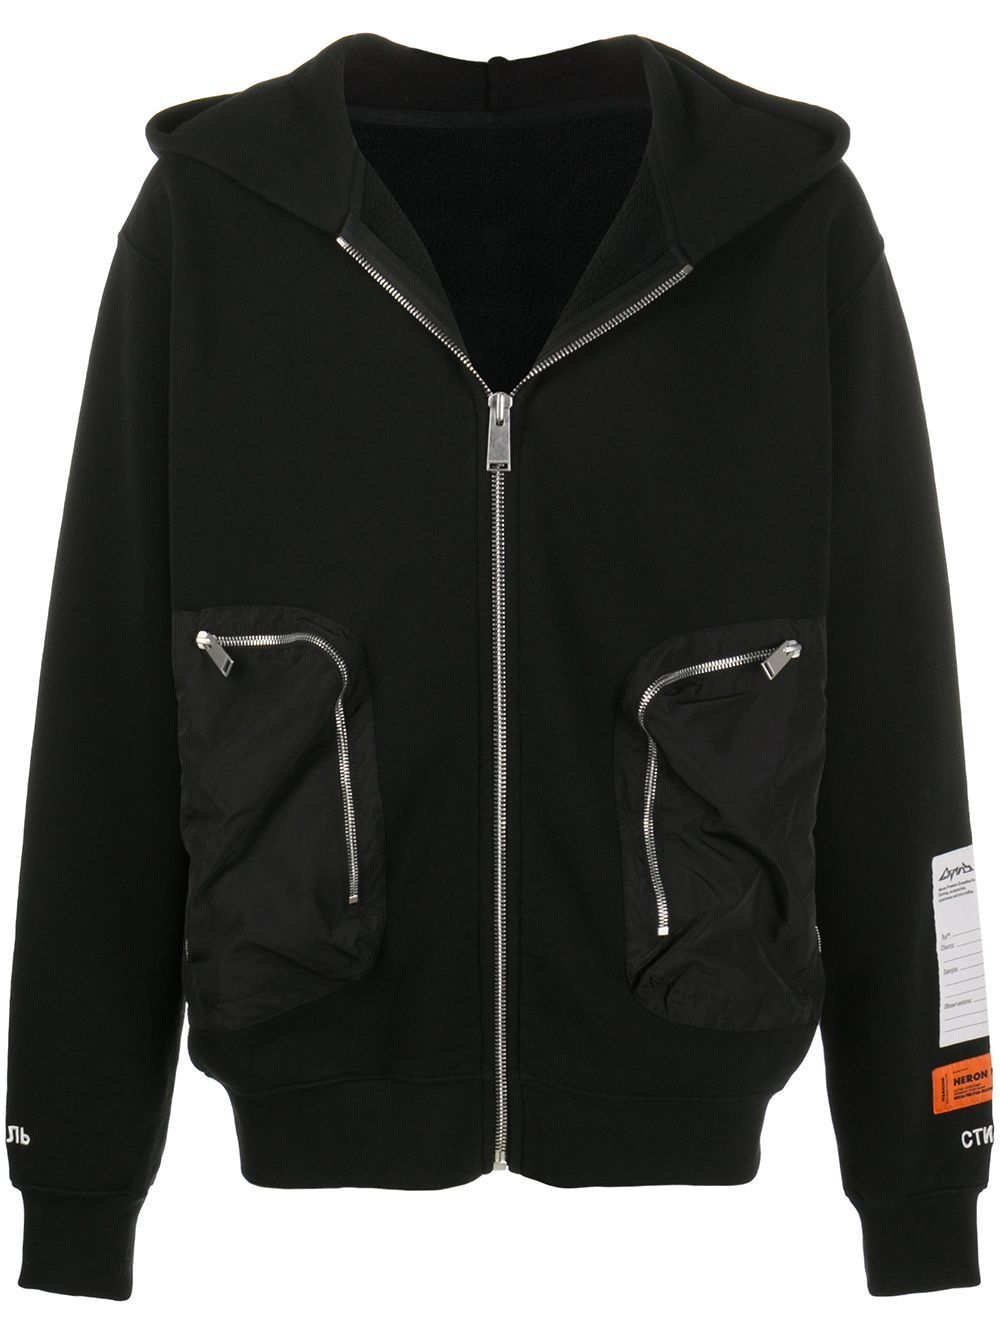 HERON PRESTON Pocket Hoodie Black - Maison De Fashion